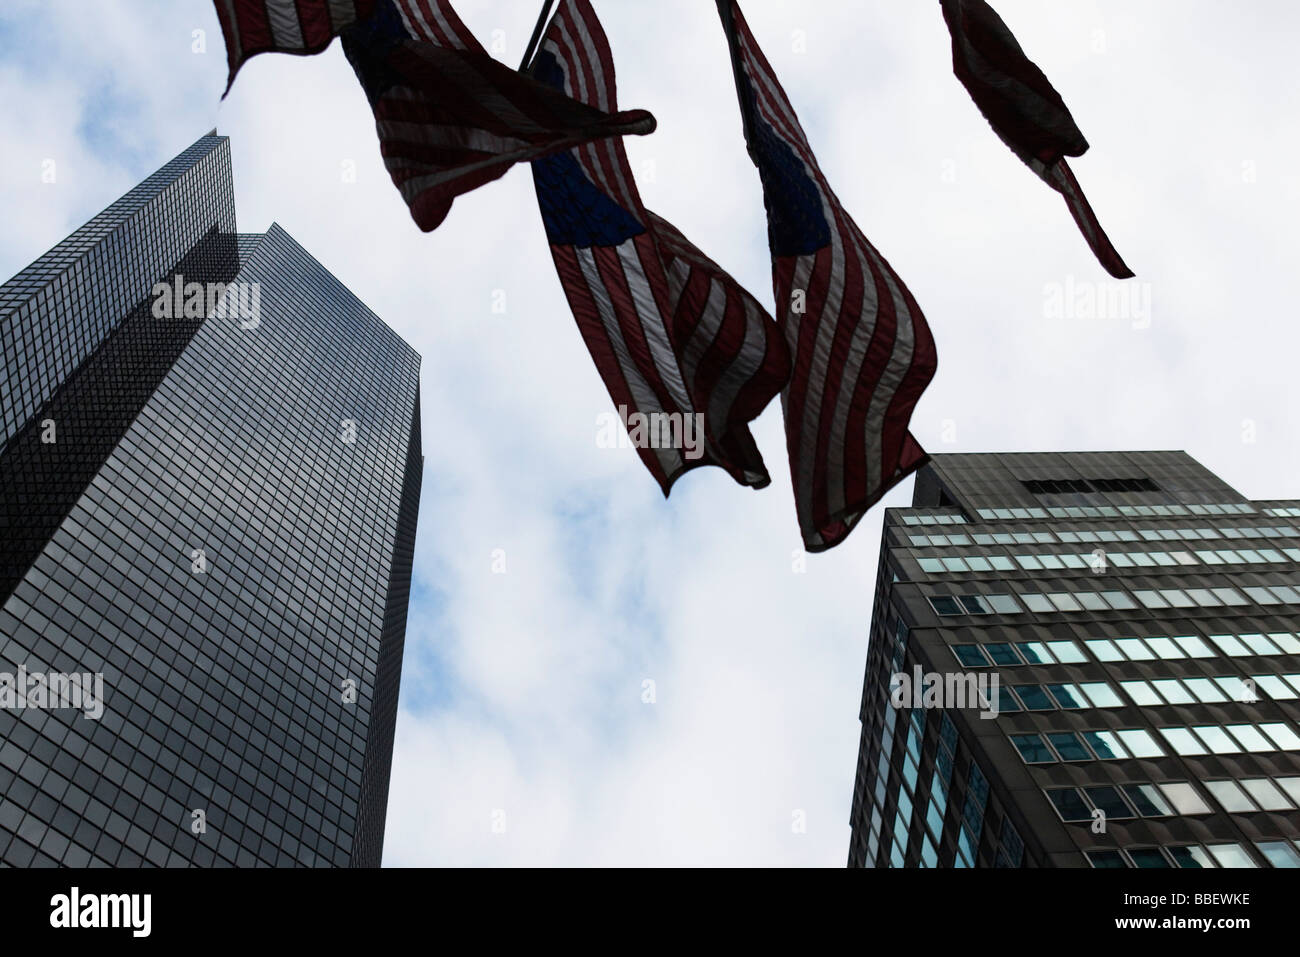 Skyscrapers, flags waiving in breeze, viewed from below - Stock Image